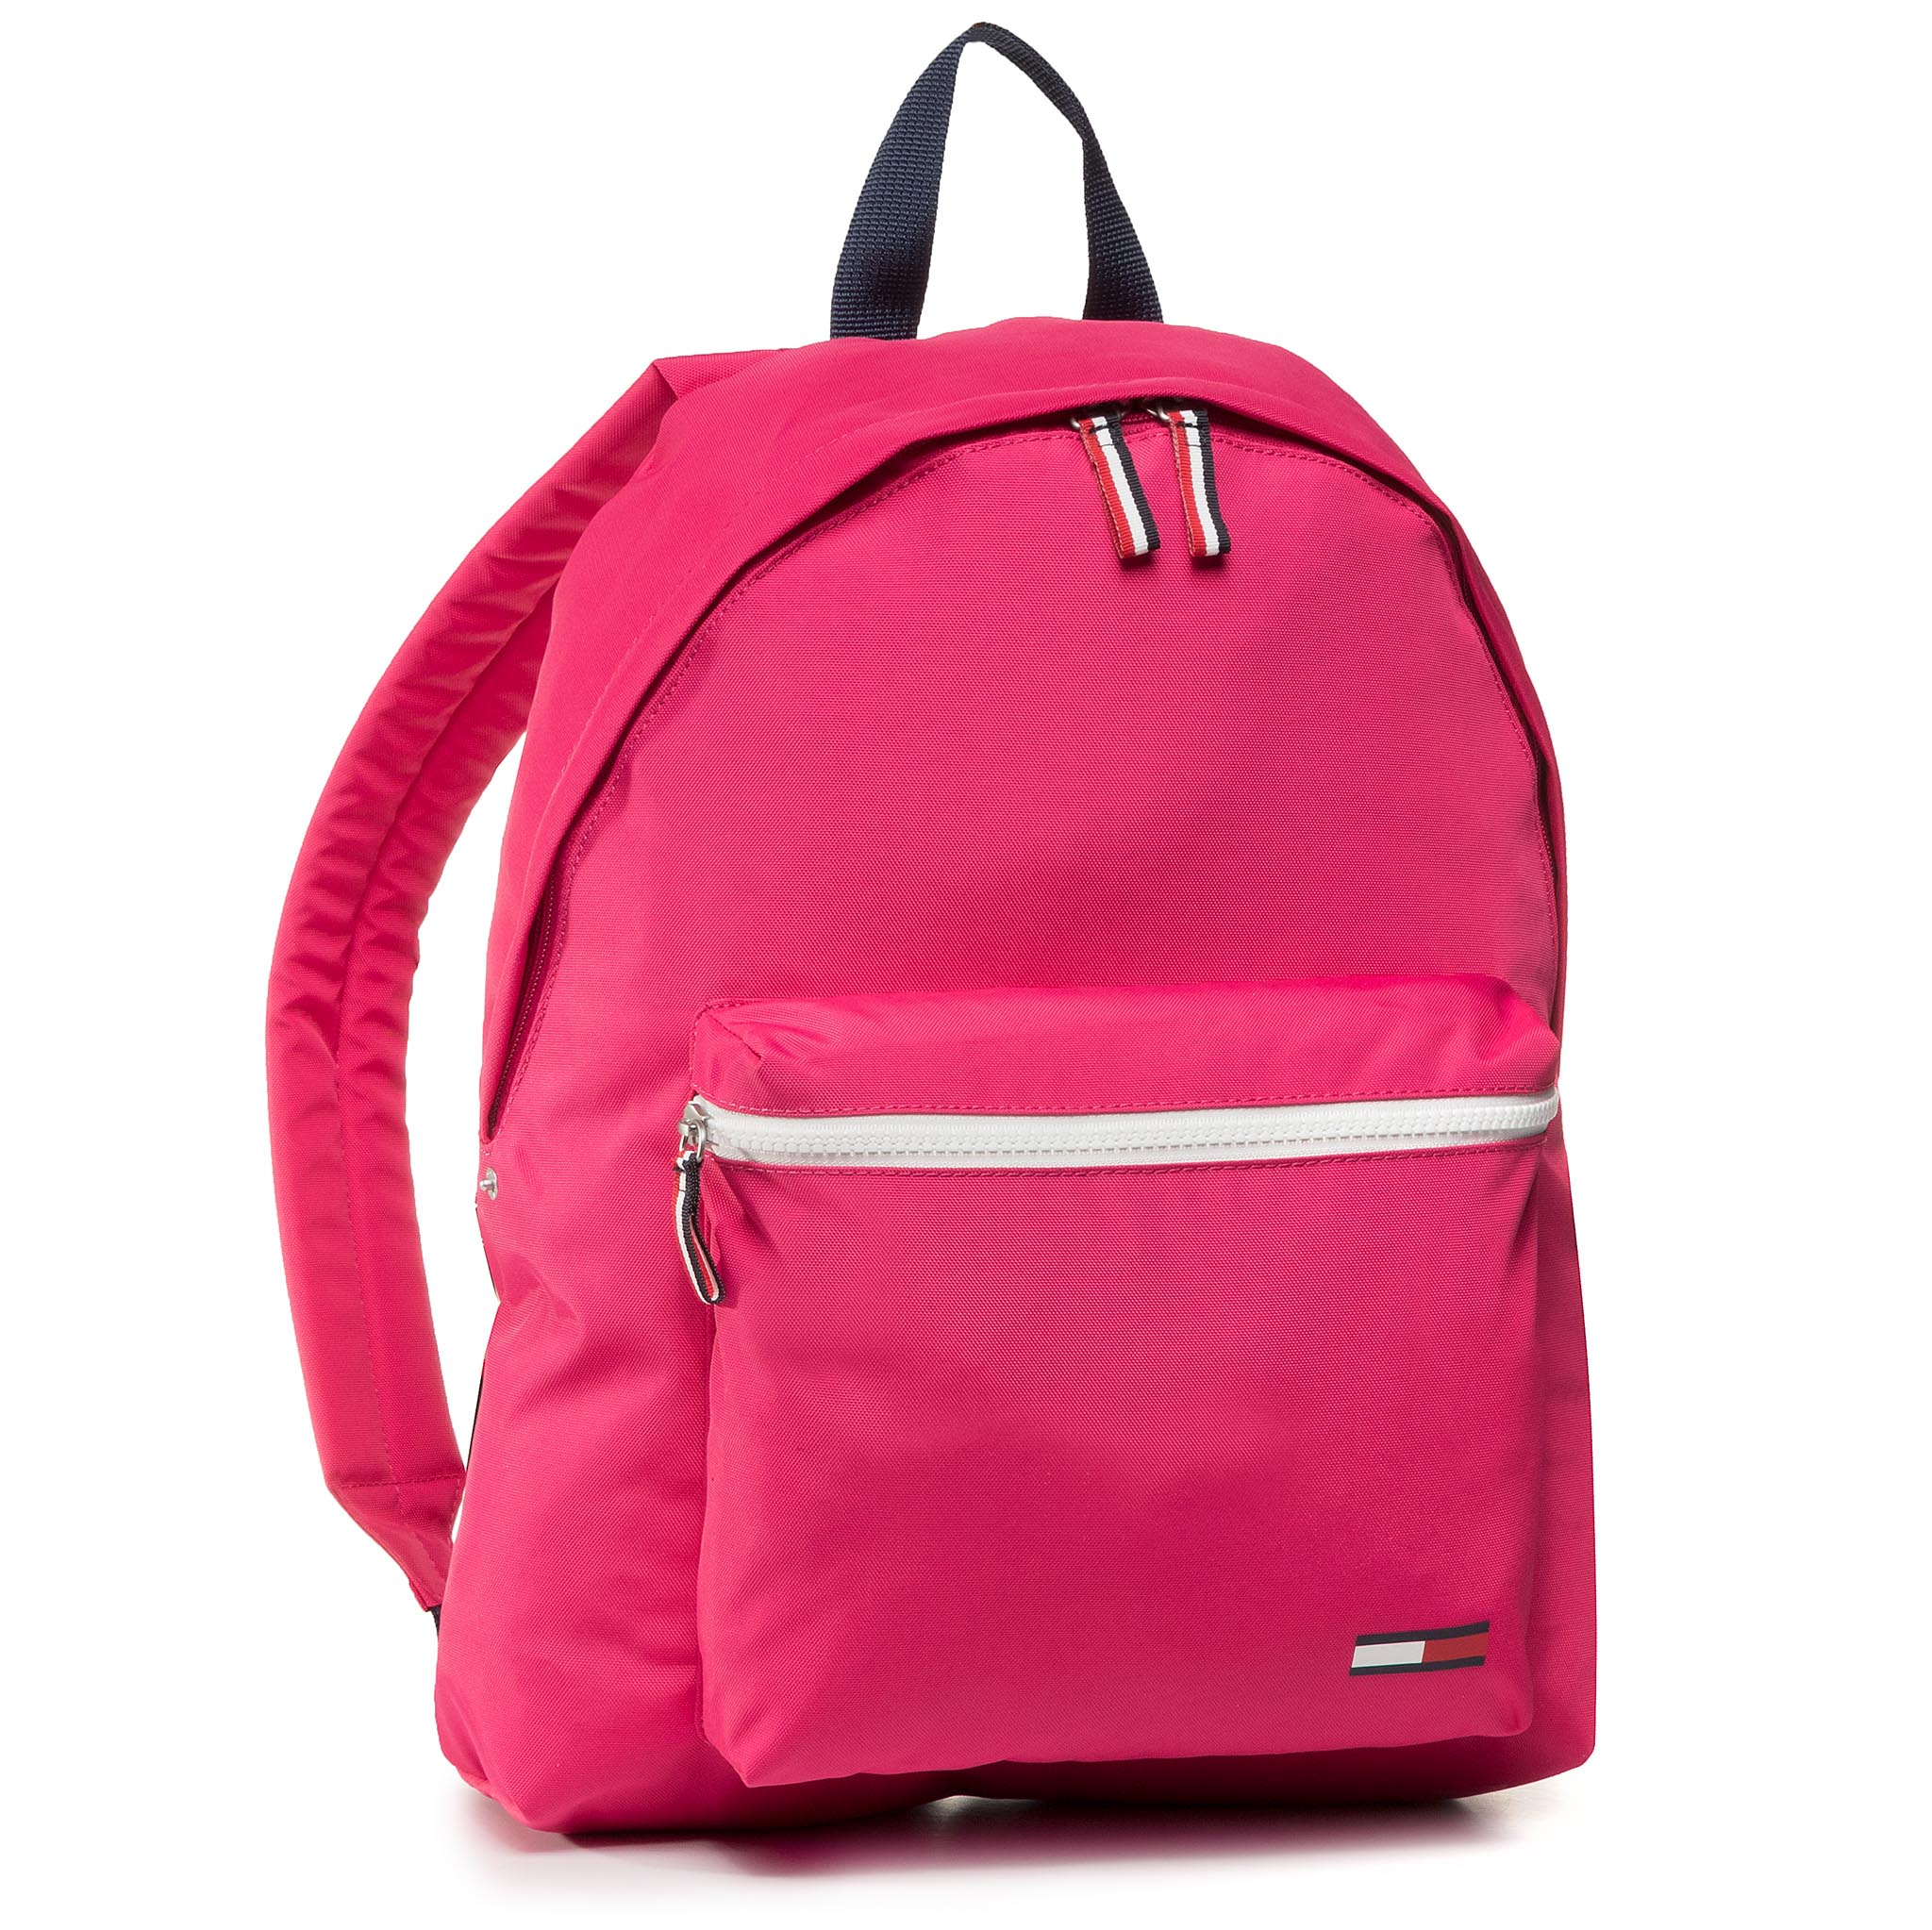 Rucsac Tommy Jeans - Tjw Cool City Backpack Aw0aw08243 Pur imagine epantofi.ro